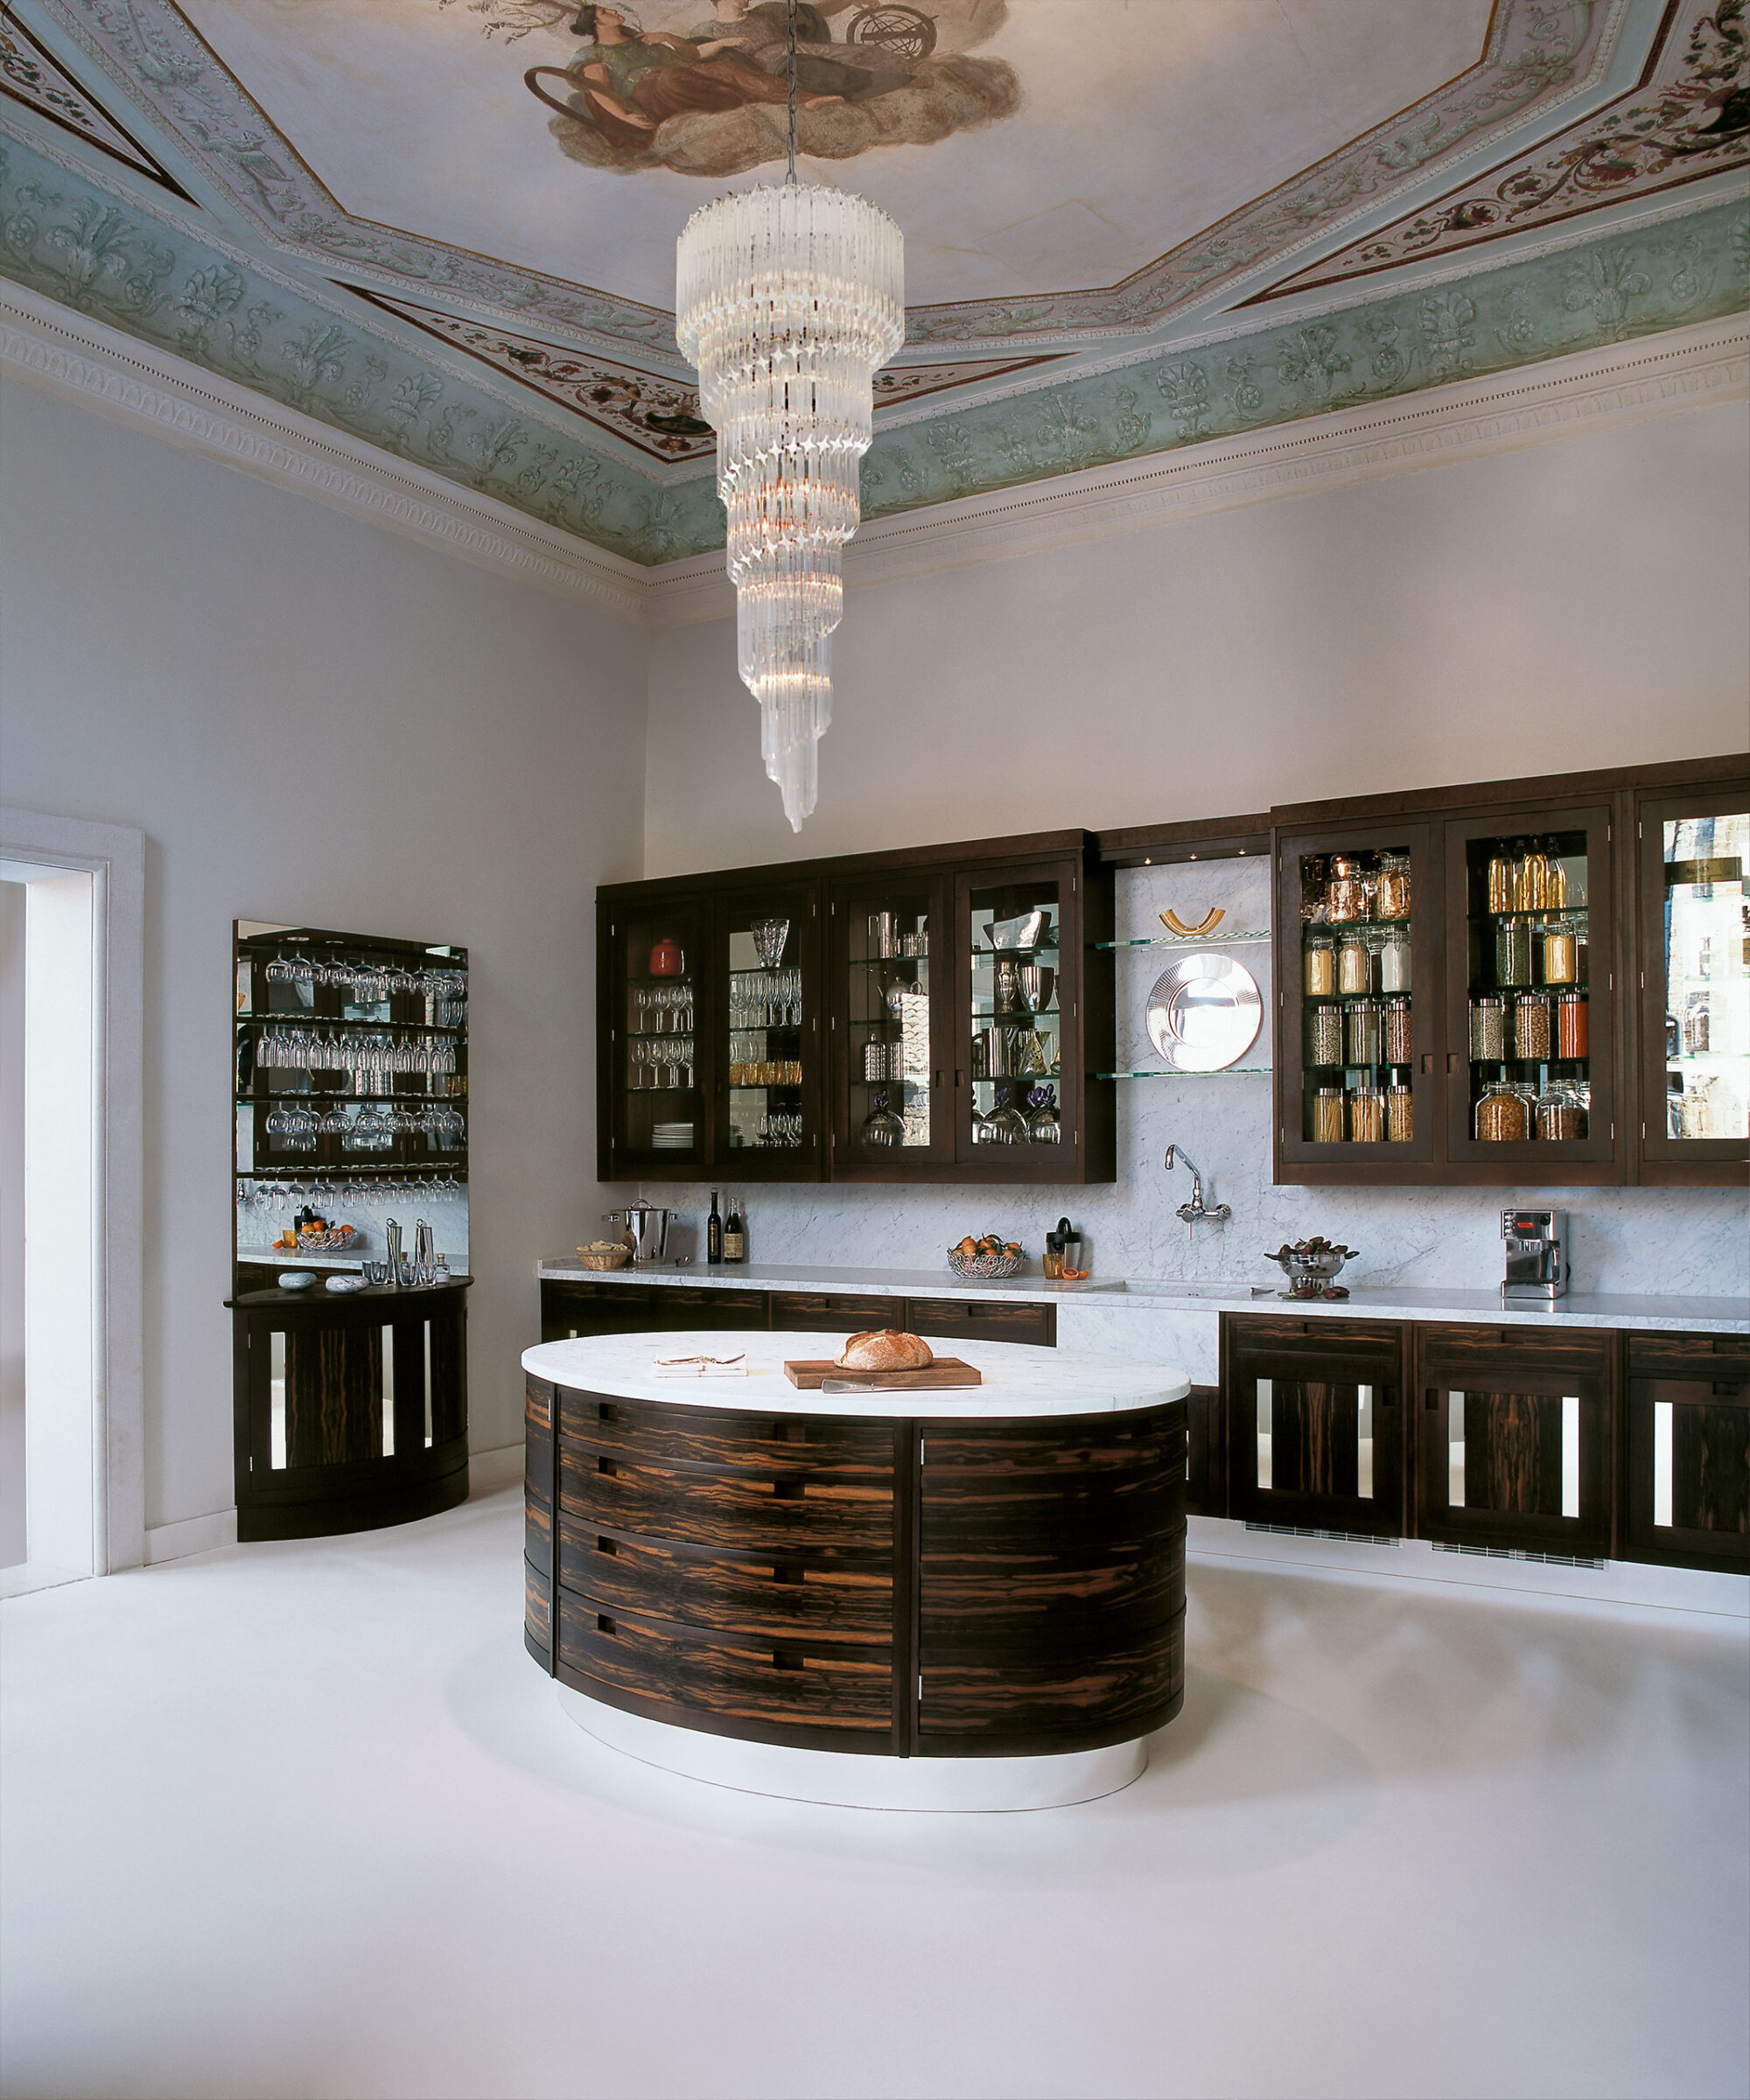 A Macassar kitchen by Smallbone in a Venetian Palazzo room setting